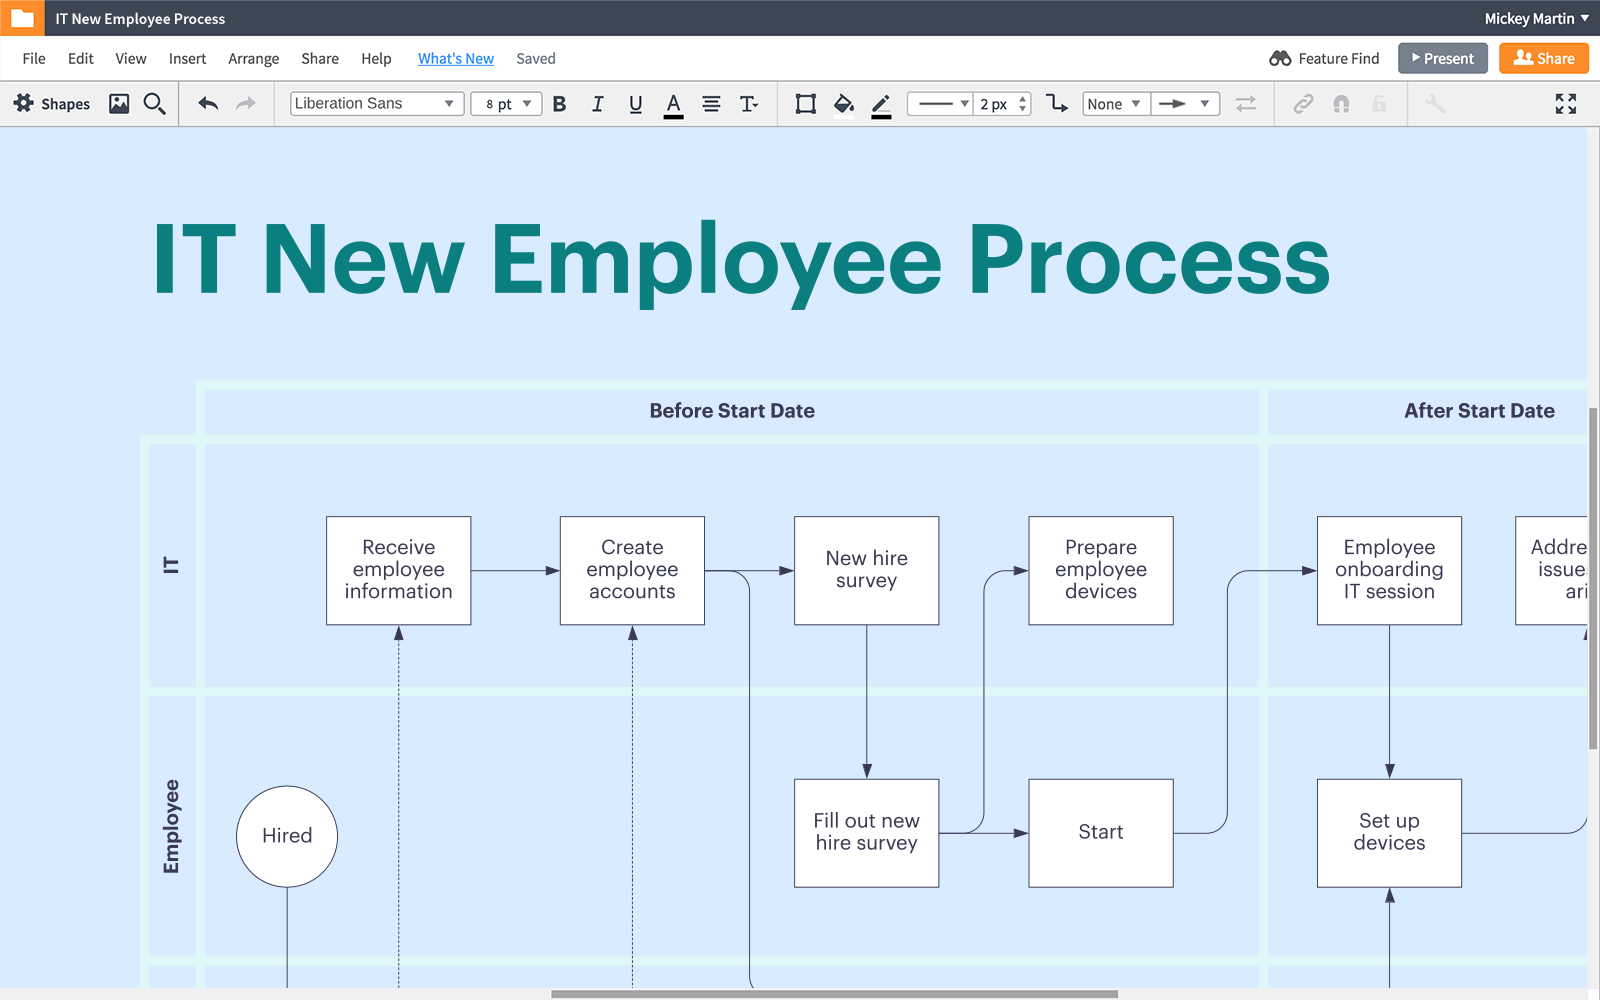 Map business processes for your organization